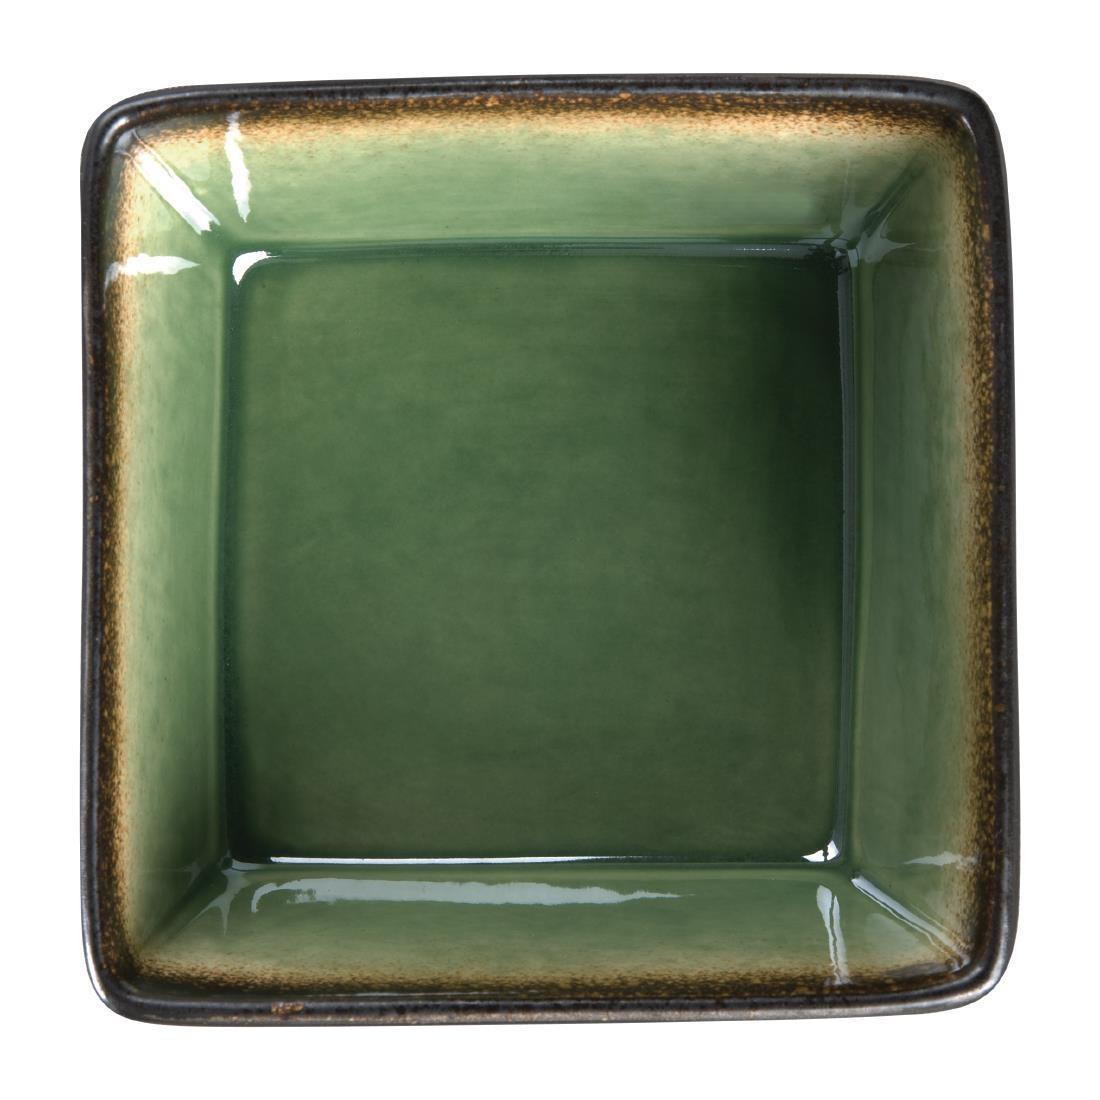 Olympia Nomi Square Bowl Green 110mm